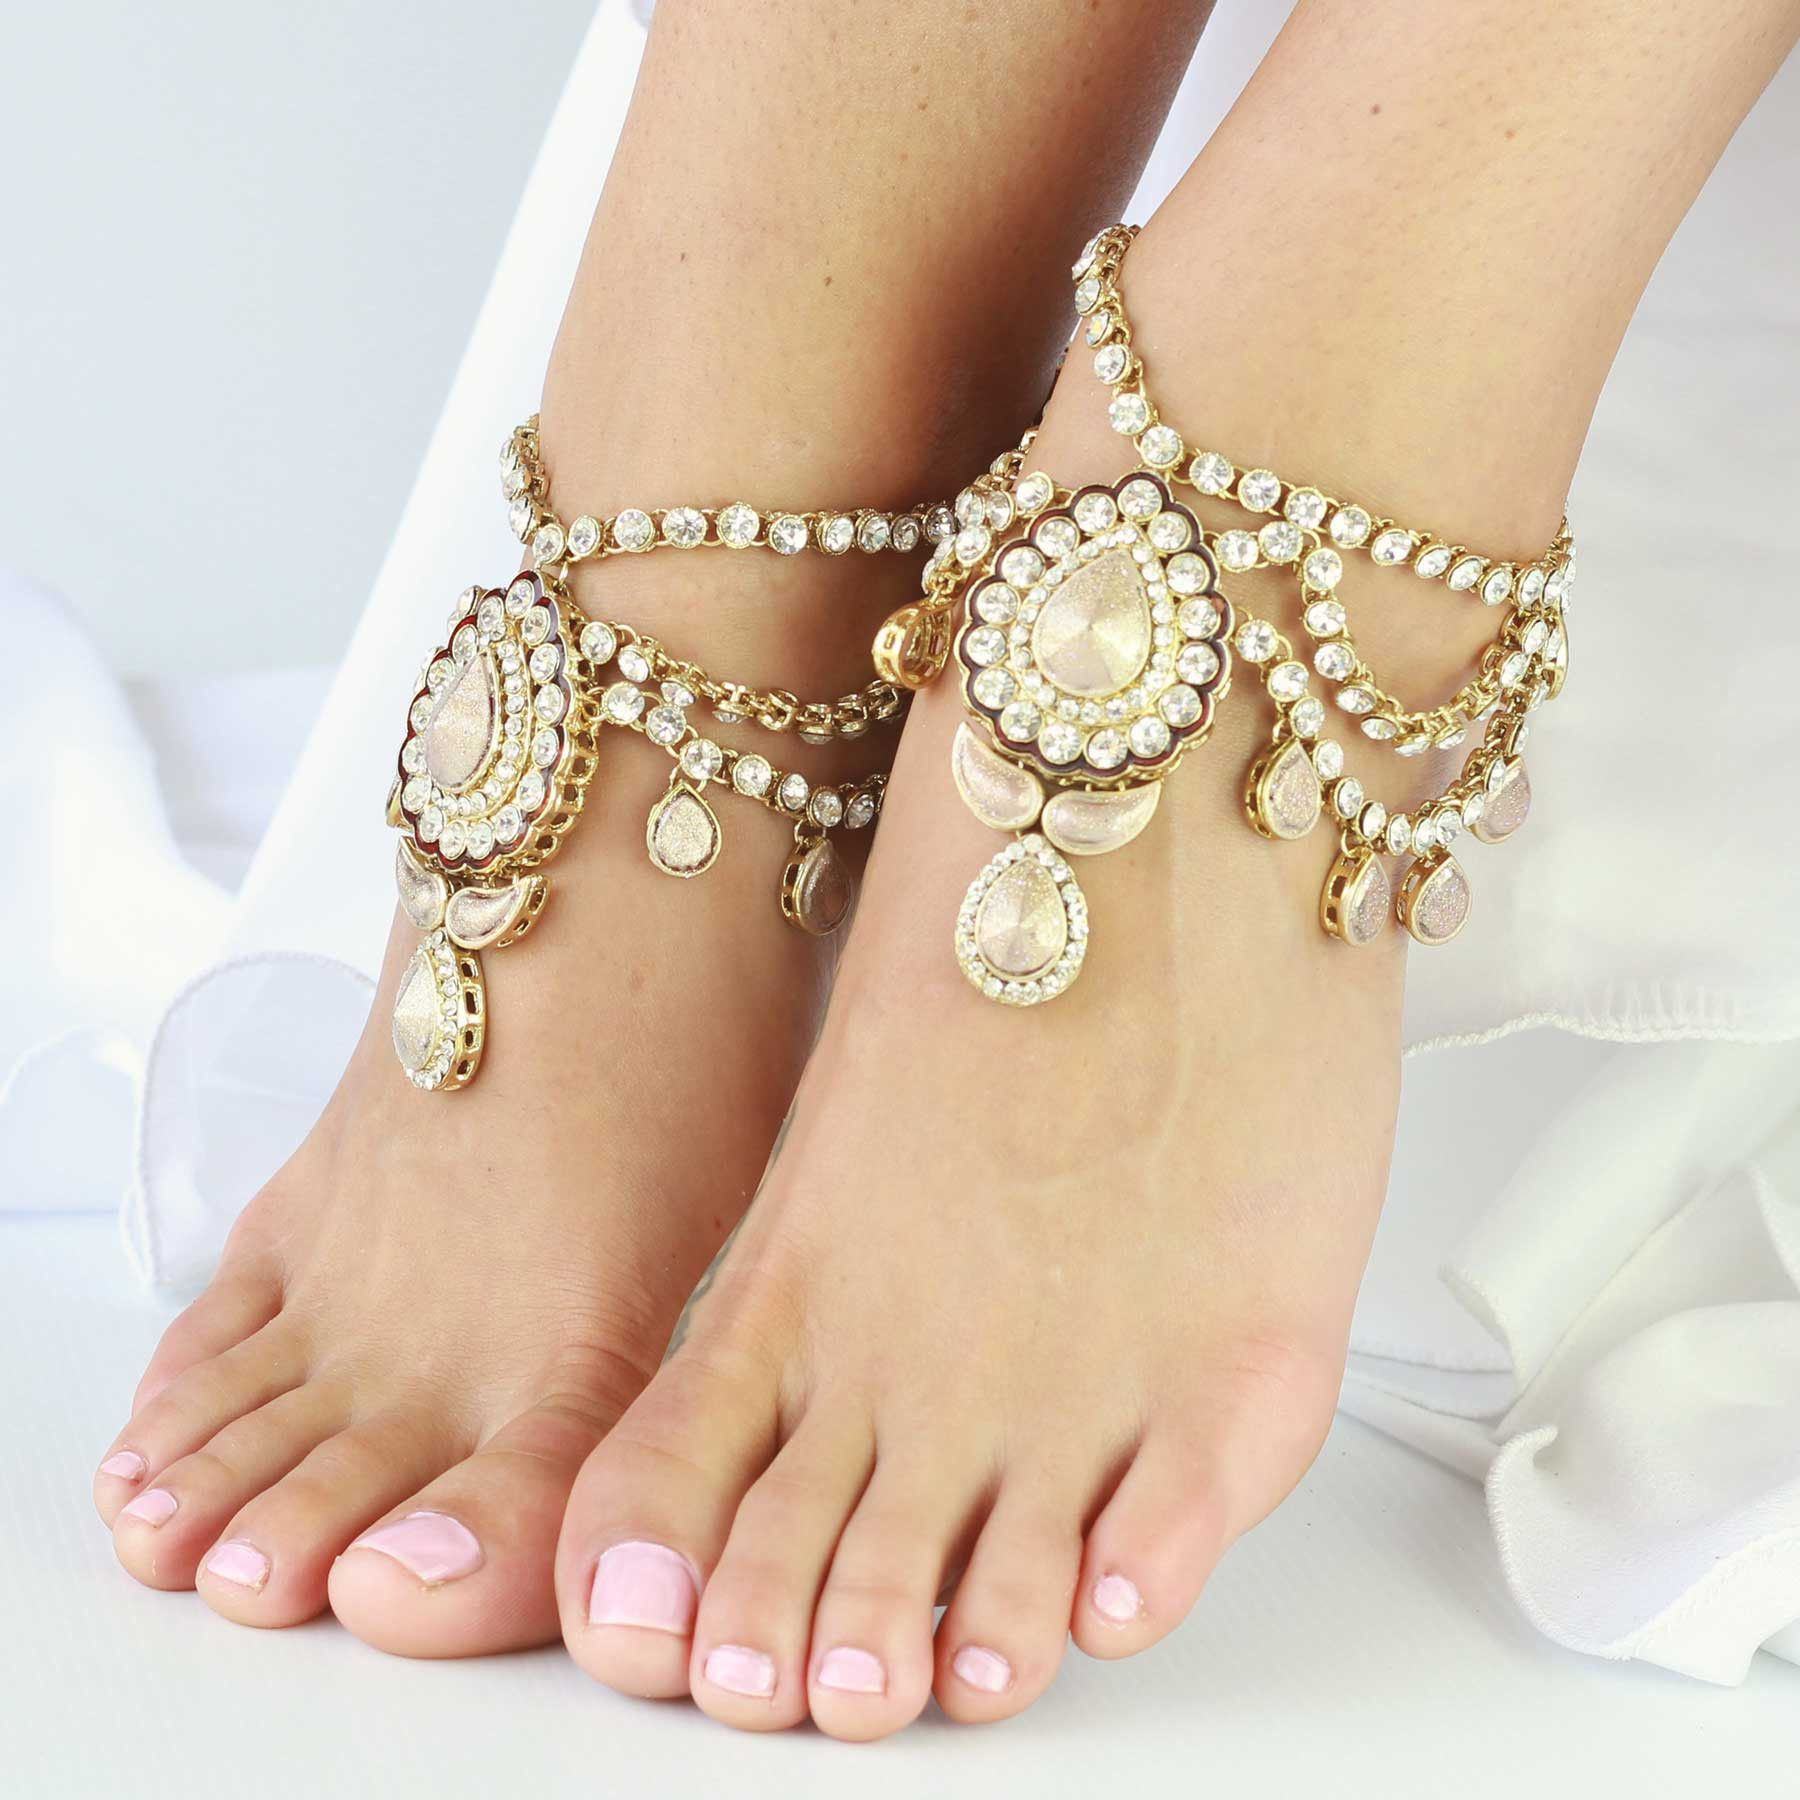 anklet soles pin boho shoes by bridal chara jewelry wedding forever